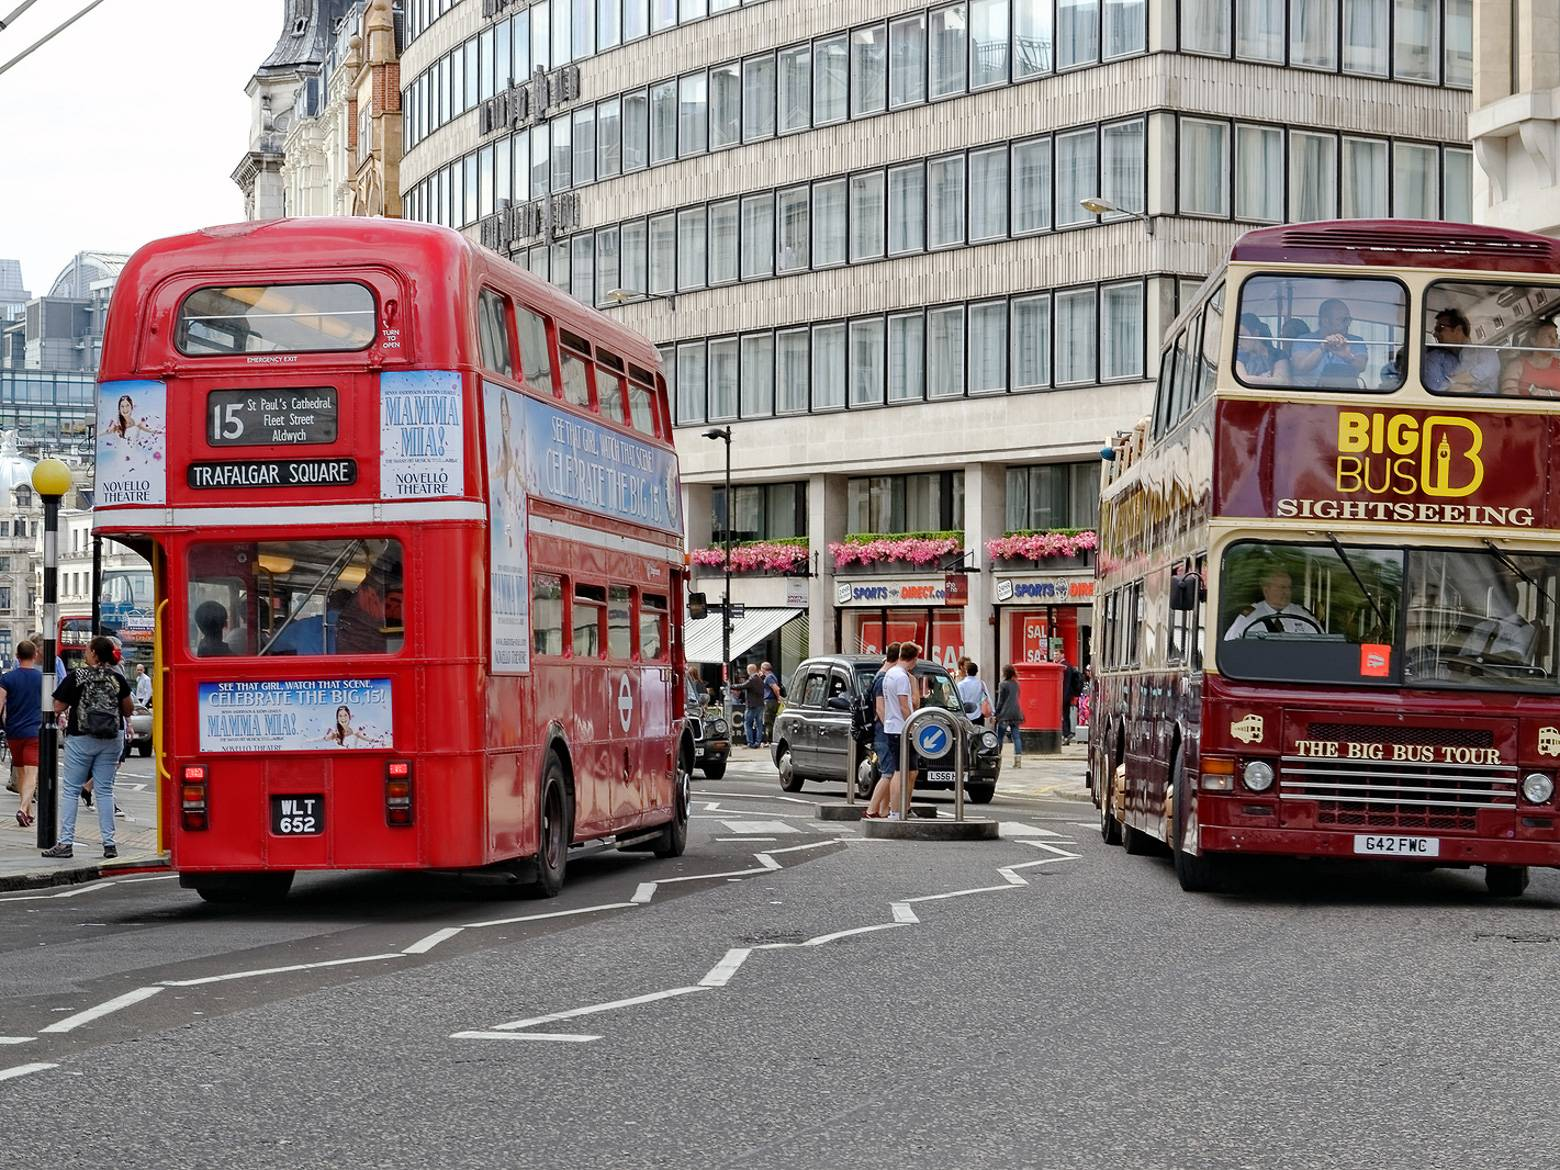 Image of two double-decker buses on a London street